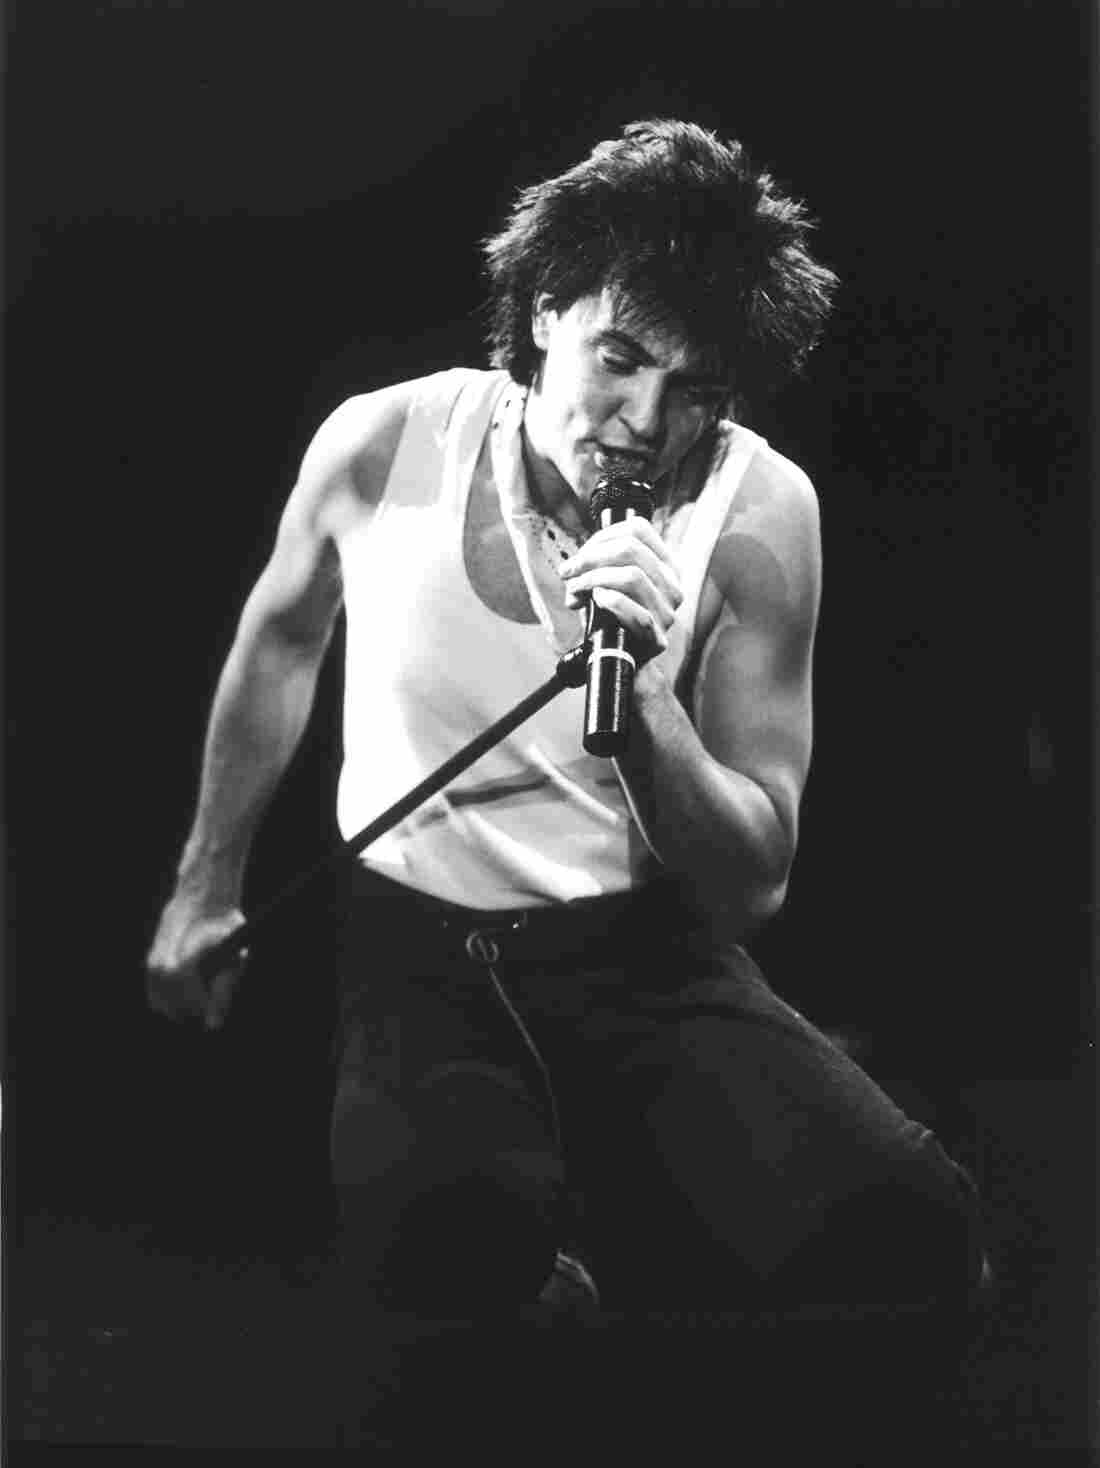 Paul Young onstage in London, 1983.